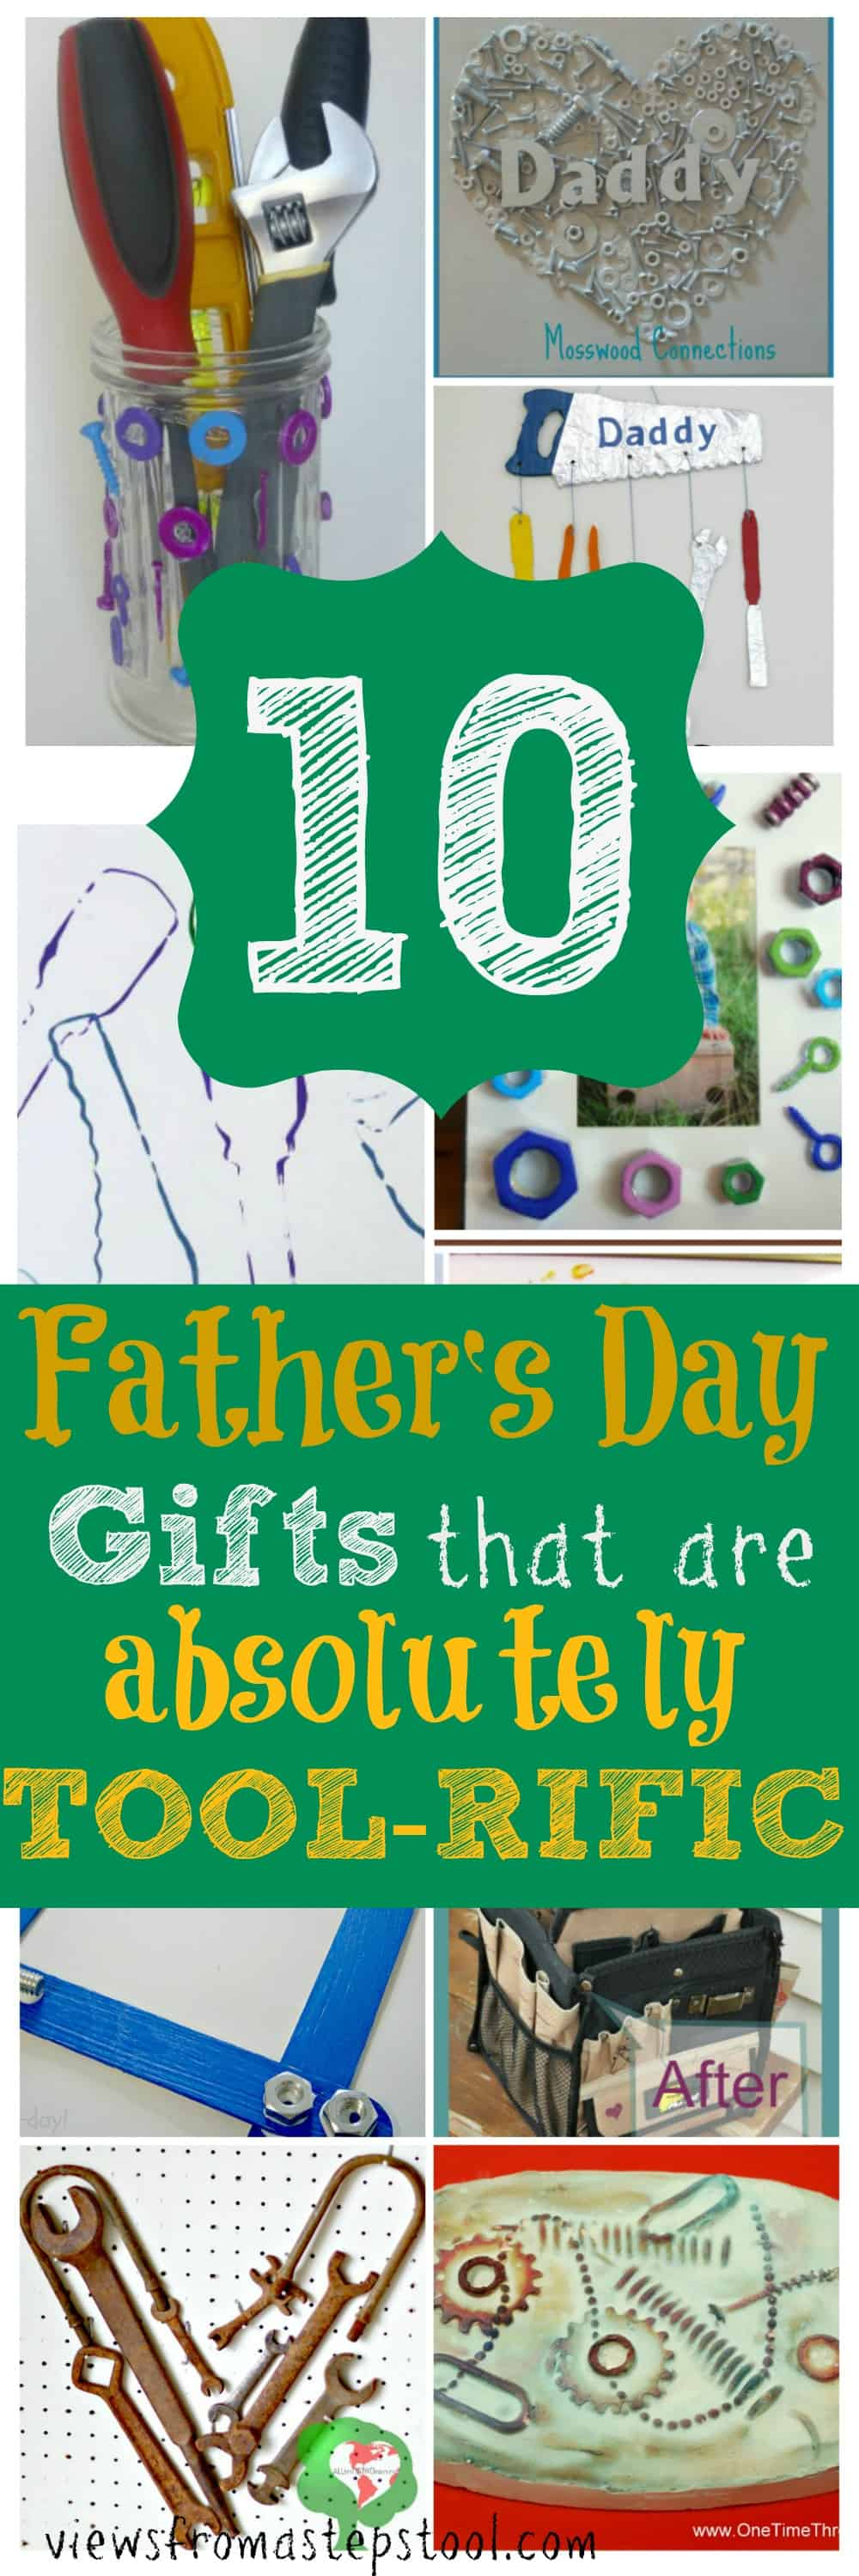 These father's day gifts are perfect for the tool lover! For the dad who has everything, they appreciate a homemade gift from their kids. These can all be kid made and are sure to warm the heart of any dad this father's day!